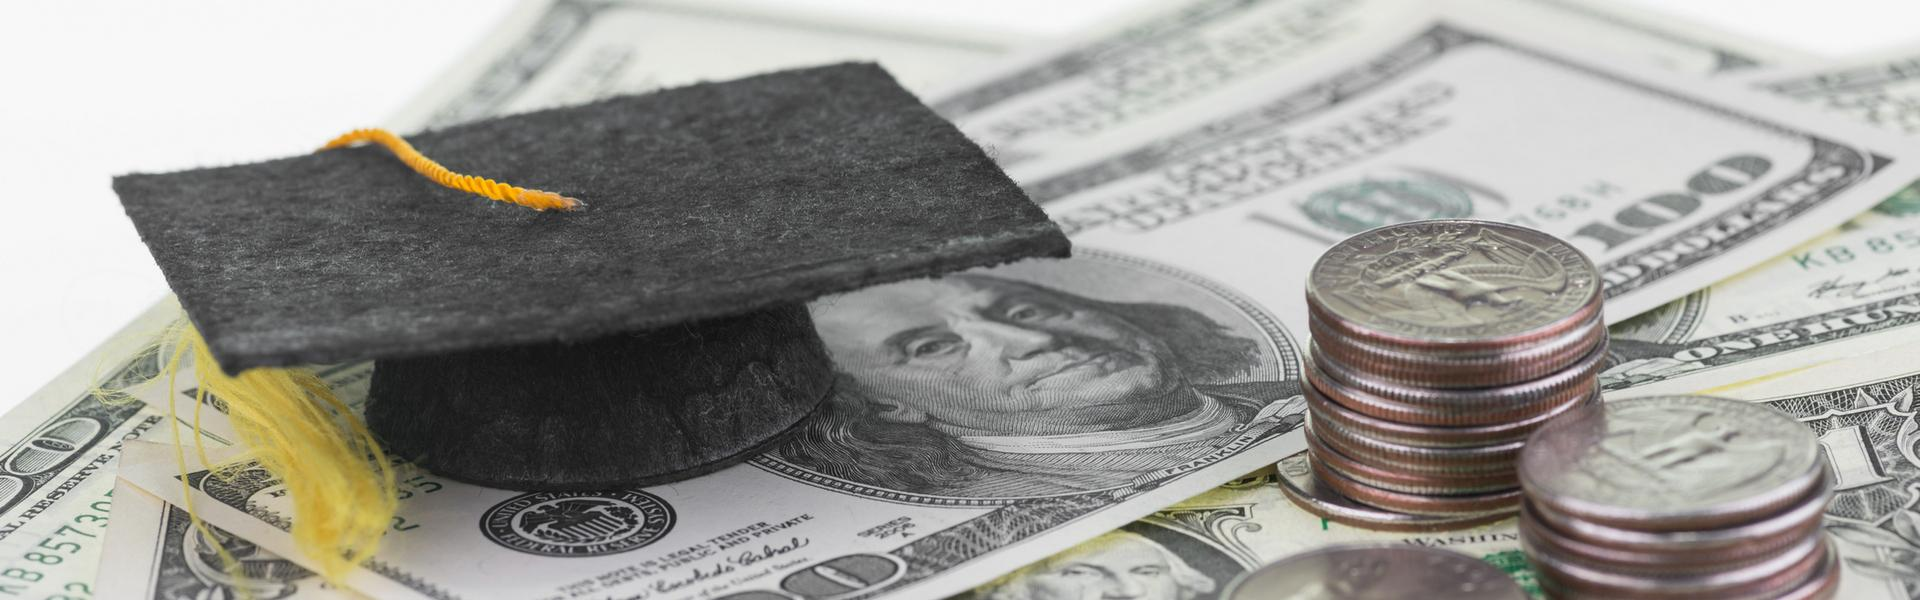 A graduation cap sitting on a pile of money.